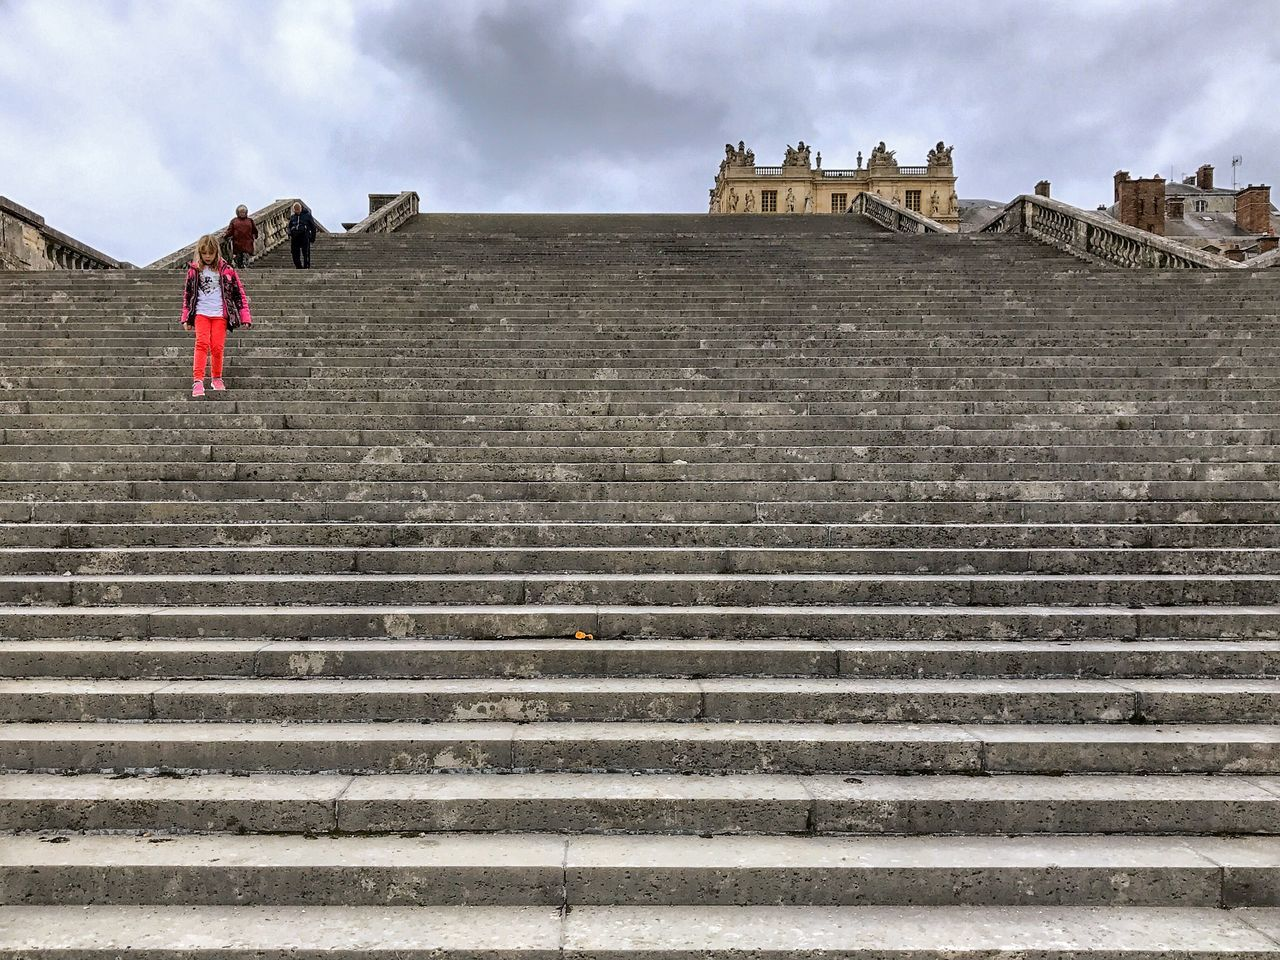 Château De Versailles  Stairs 😀 Versailles France Photooftheday Picoftheday People Architecture Streetphotography Steps Staircase Low Angle View Travel Destinations Tourist Attraction  The Street Photographer - 2017 EyeEm Awards The Architect - 2017 EyeEm Awards EyeEm Best Shots Tranquility EyeEm IPhoneography EyeEmBestPics Iphonephotography Iphoneonly Mobilephotography Outofthephone Colors